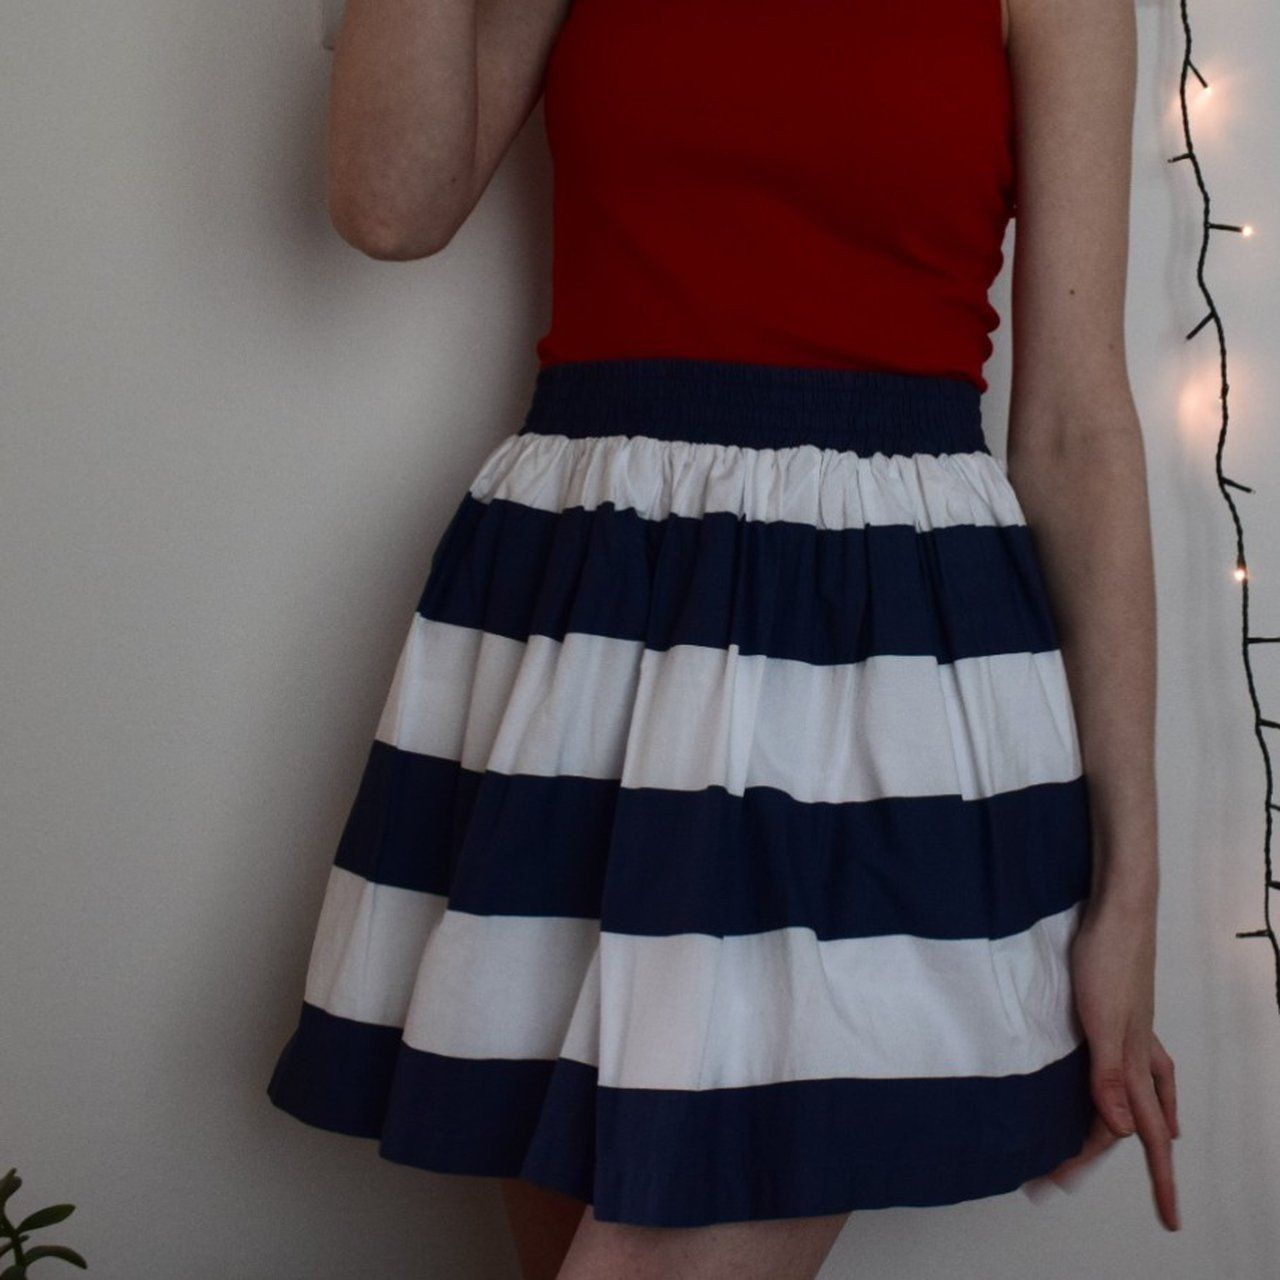 b7e0c2632a beautiful vintage navy and white striped skirt with layered - Depop - 14